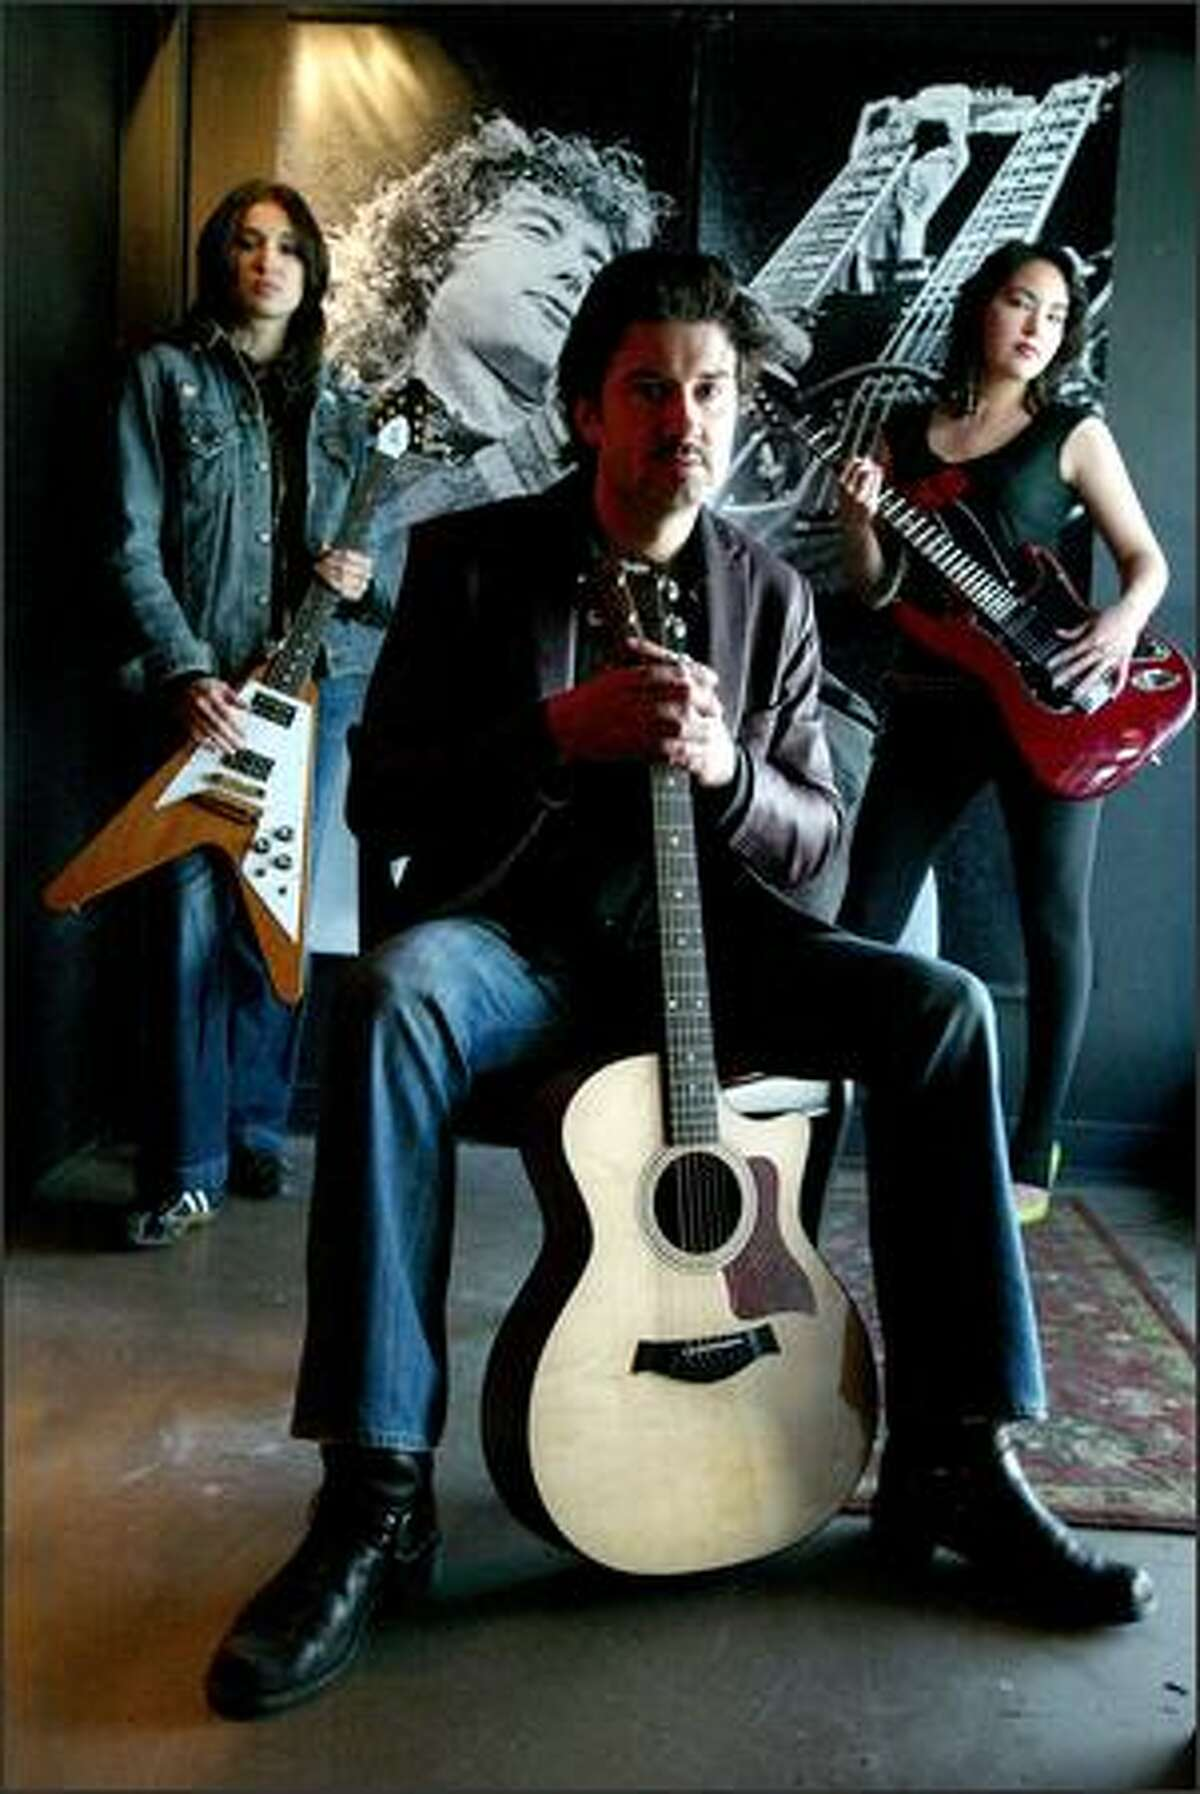 Owner Randy Parsons operates his Parsons Guitar Shops with Dagna Barrera, left, and Natalia Siragusa.